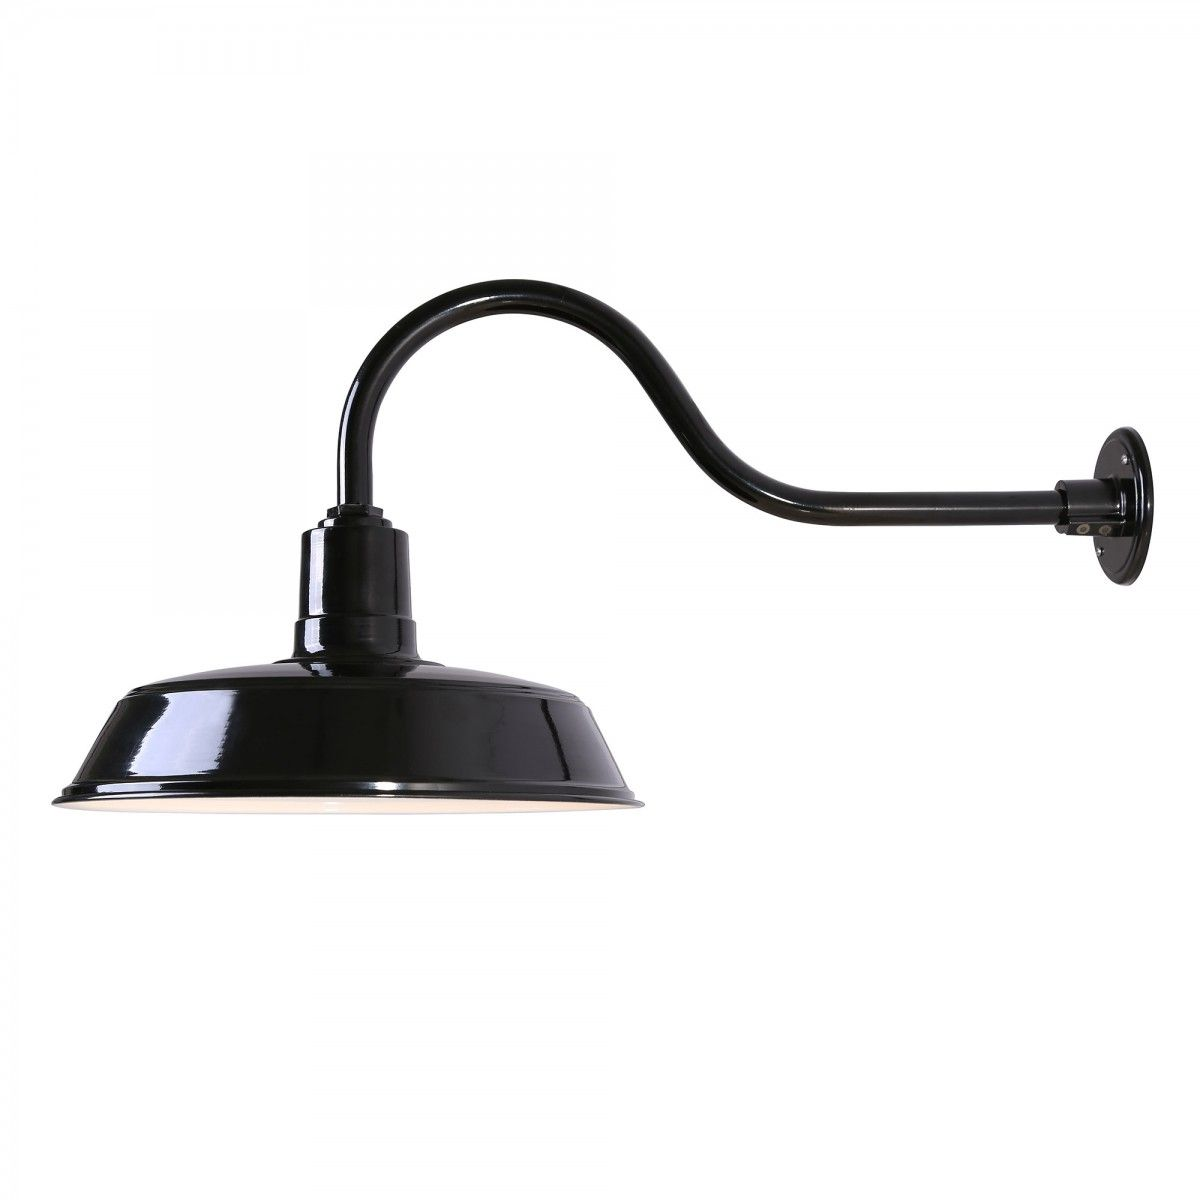 Outdoor Residential Lighting Fixtures Canarm bl16wacbk exterior outdoor barn light fixture farmhouse canarm bl16wacbk exterior outdoor barn light fixture farmhouse gooseneck 16 glossy black exterior workwithnaturefo